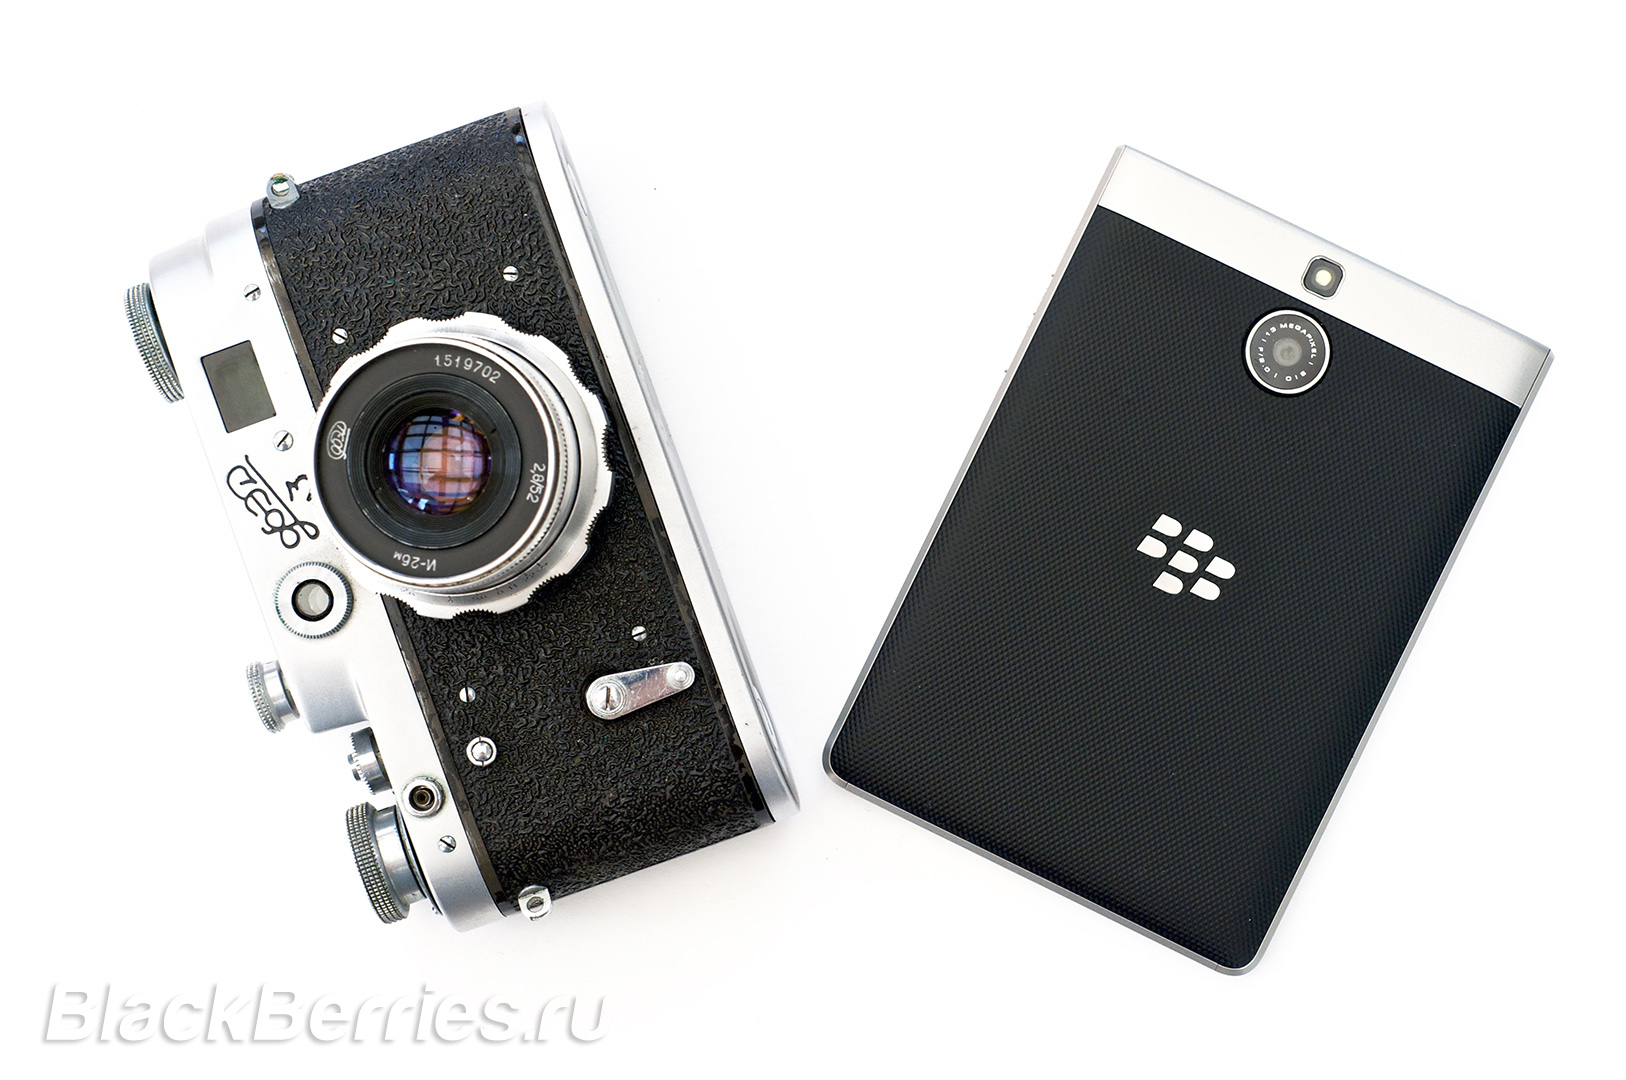 BlackBerry-Passport-Silver-Edition-Review-43